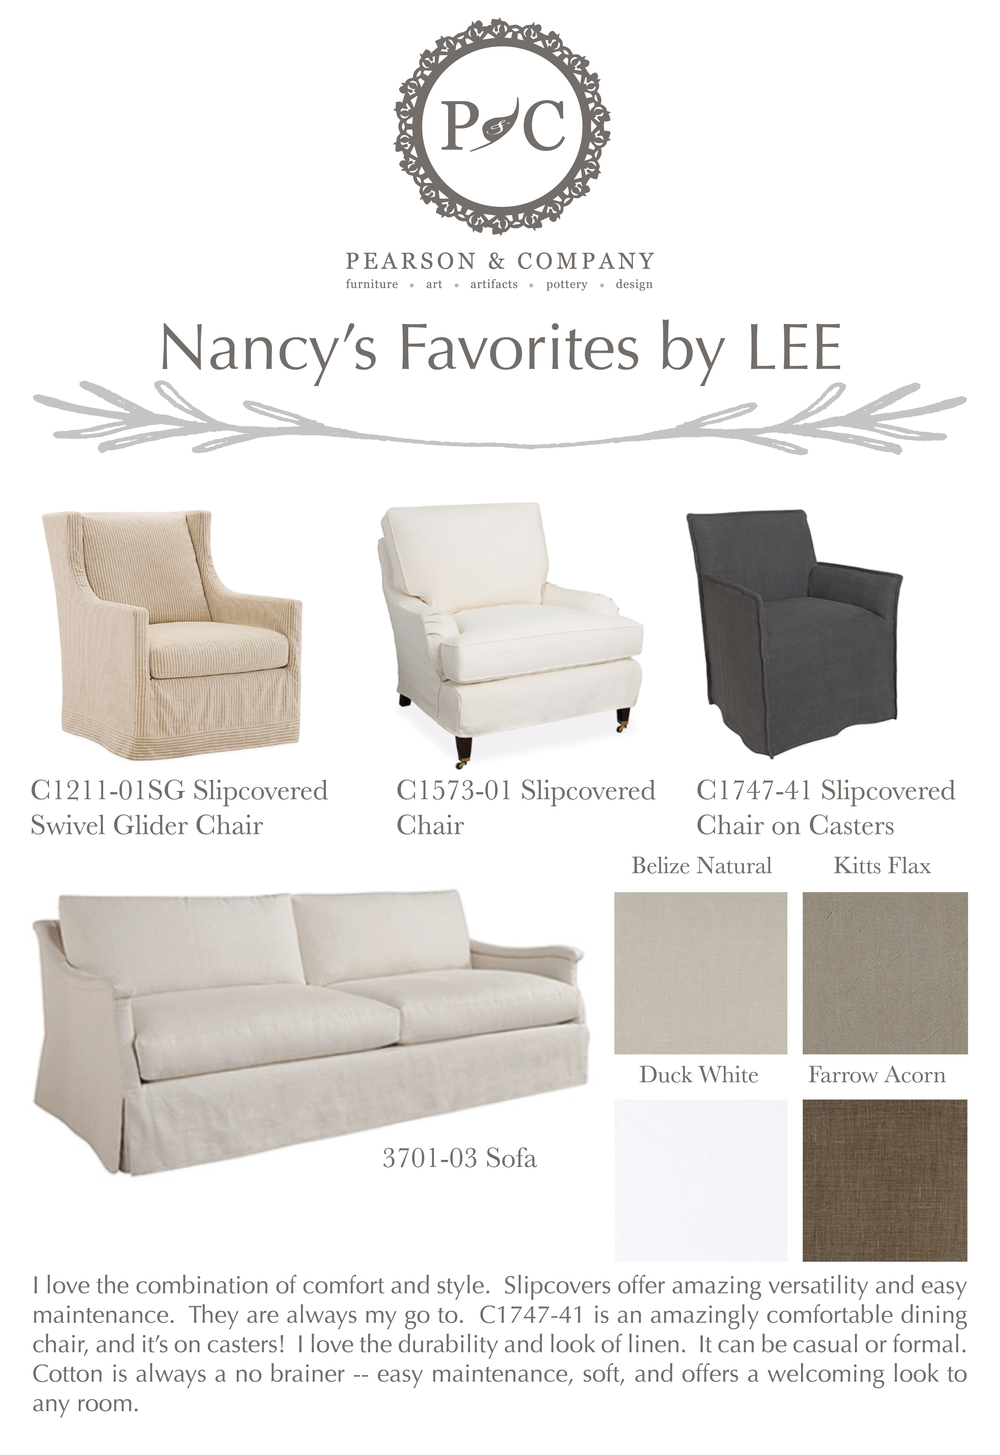 nancy lee picks.jpg